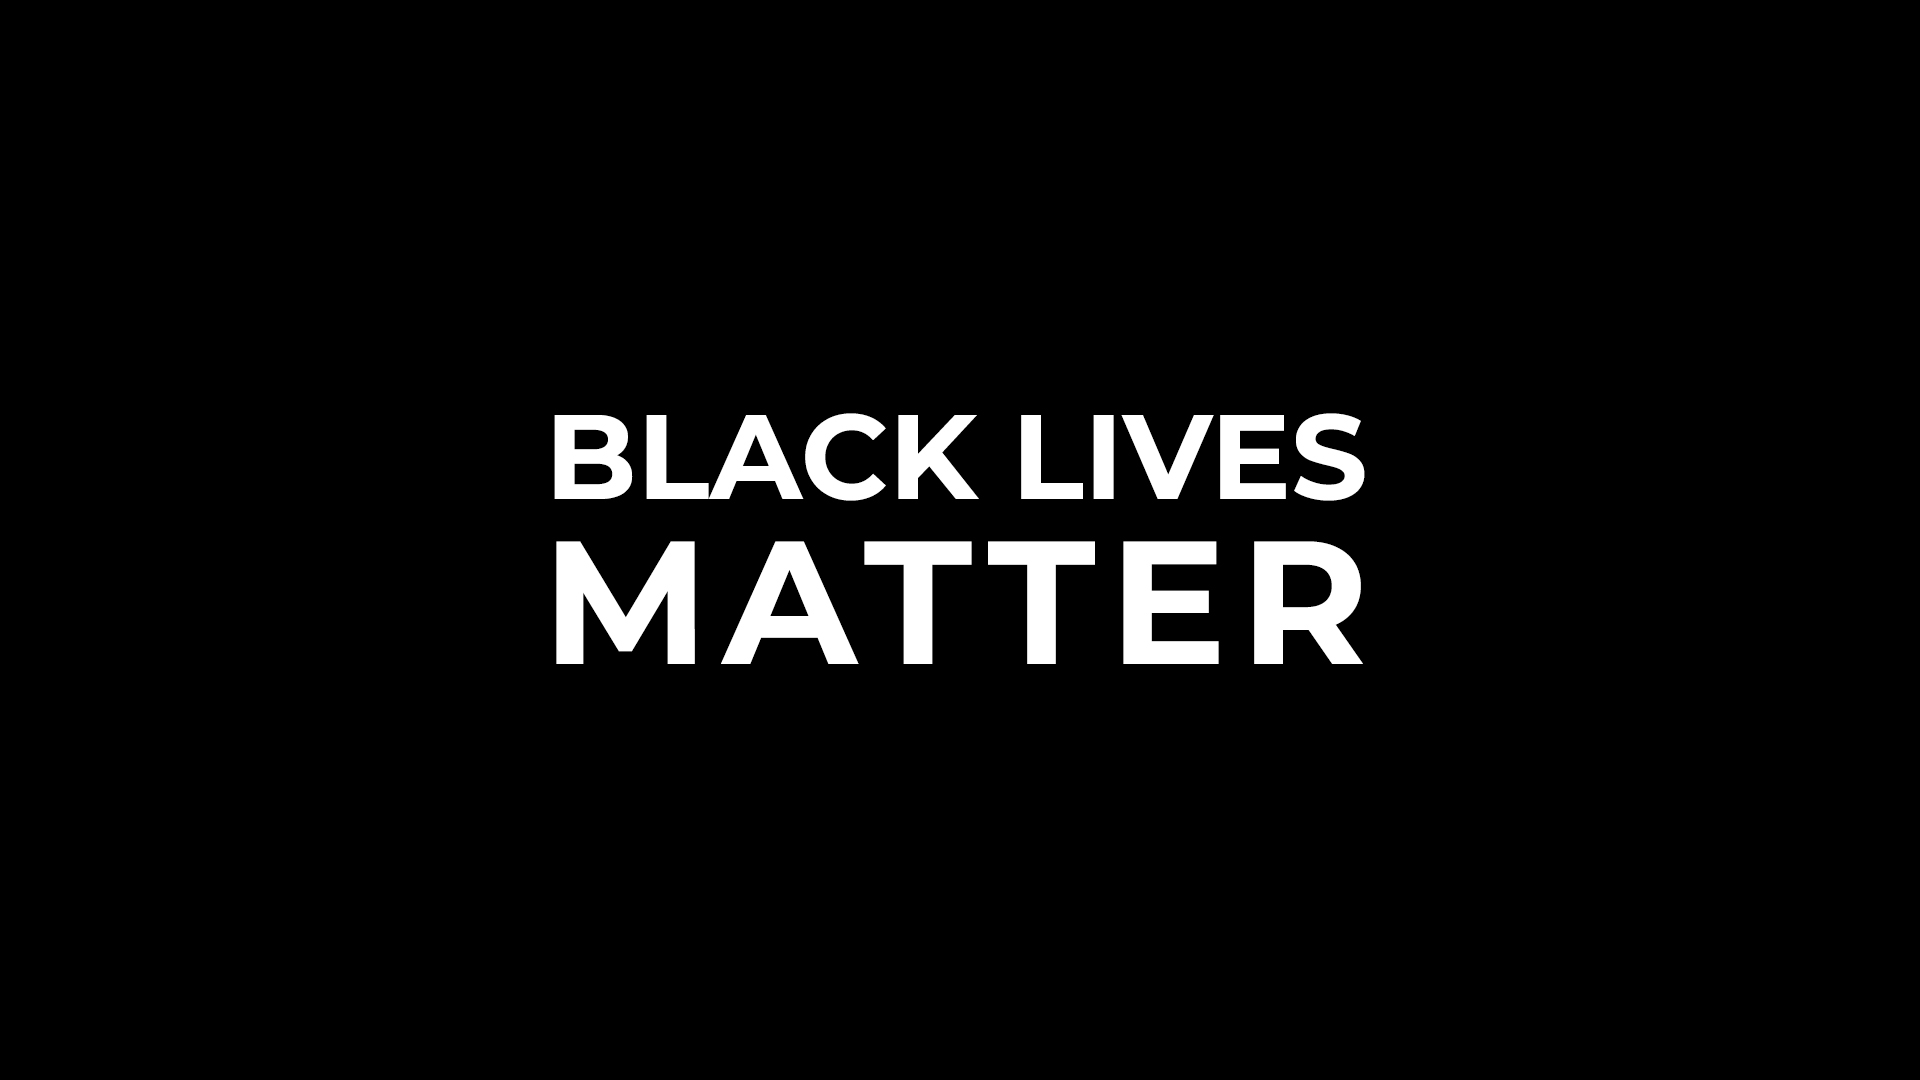 Black Lives Matter – A Wonderful Wallpaper For Your Mobile Device